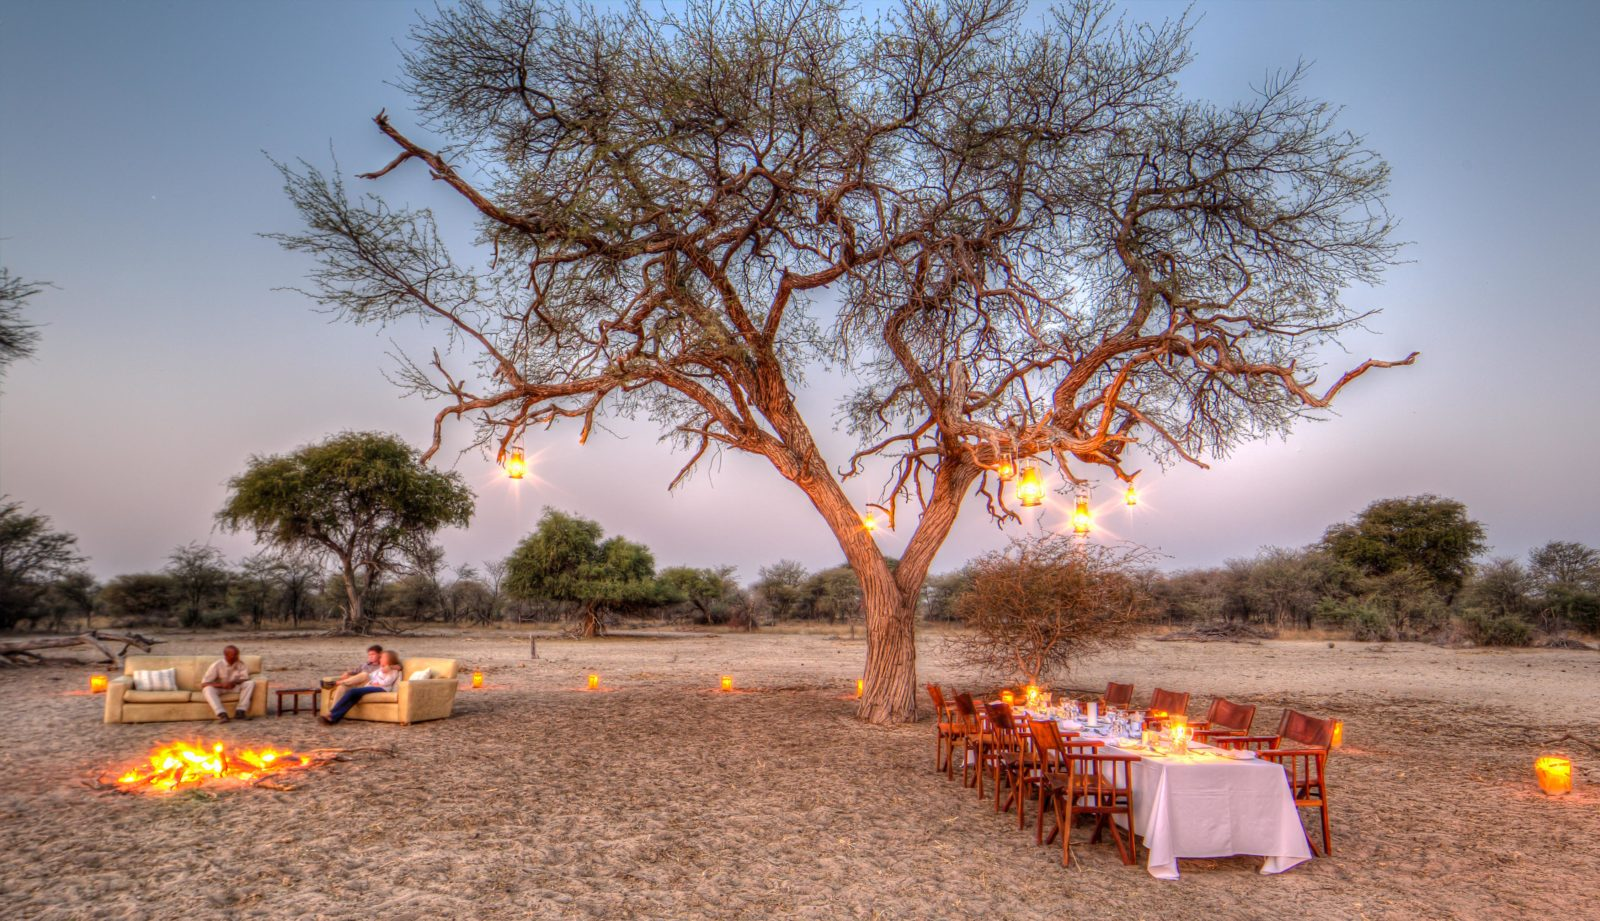 Dinner in the bush at twilight courtesy of Leroo Le Tau